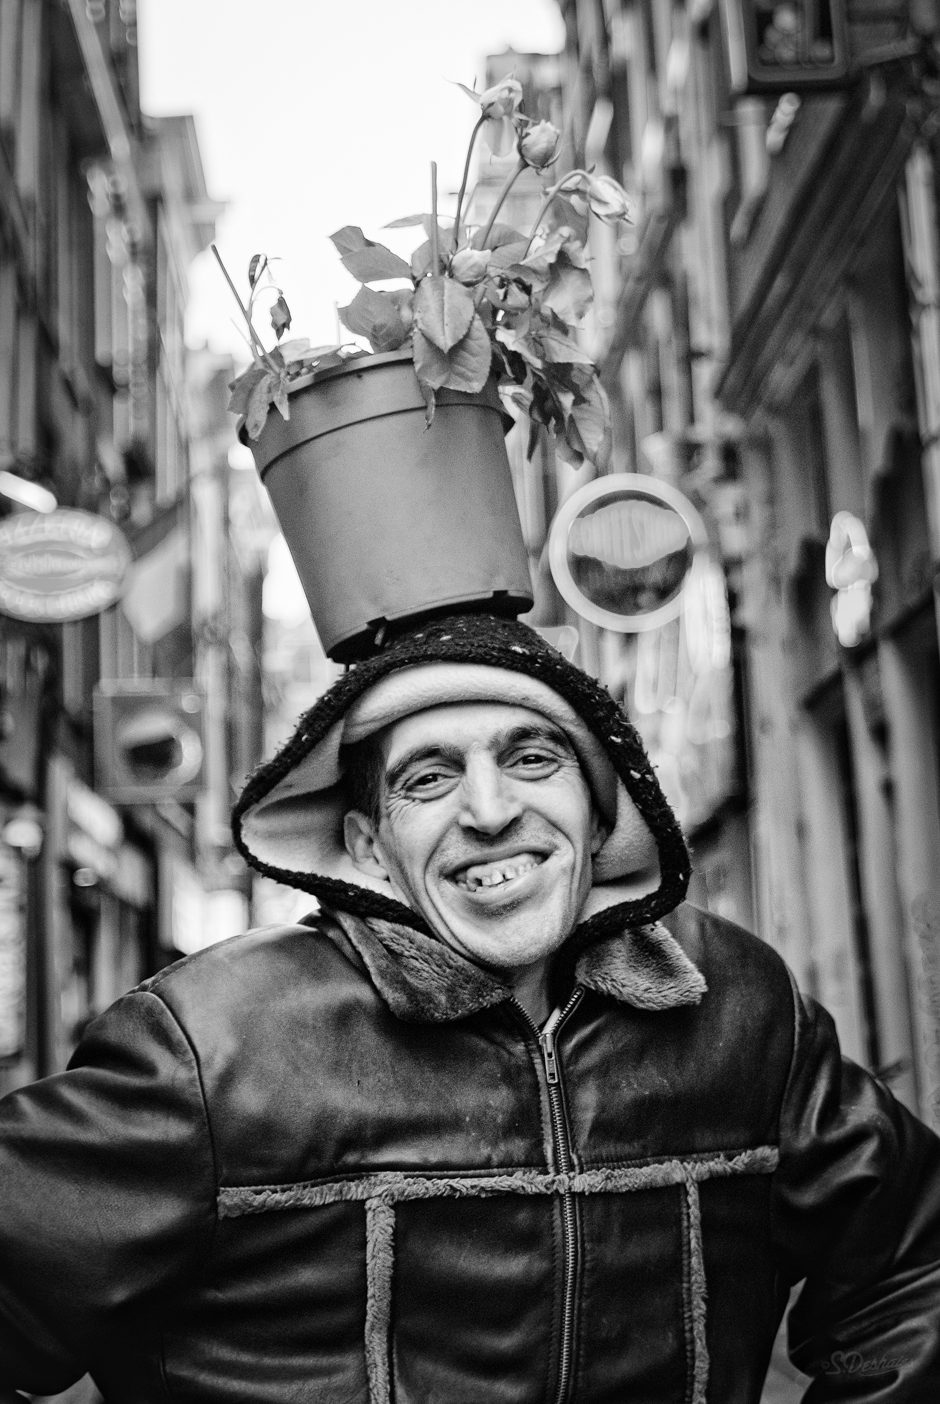 The Flower man of Amsterdam